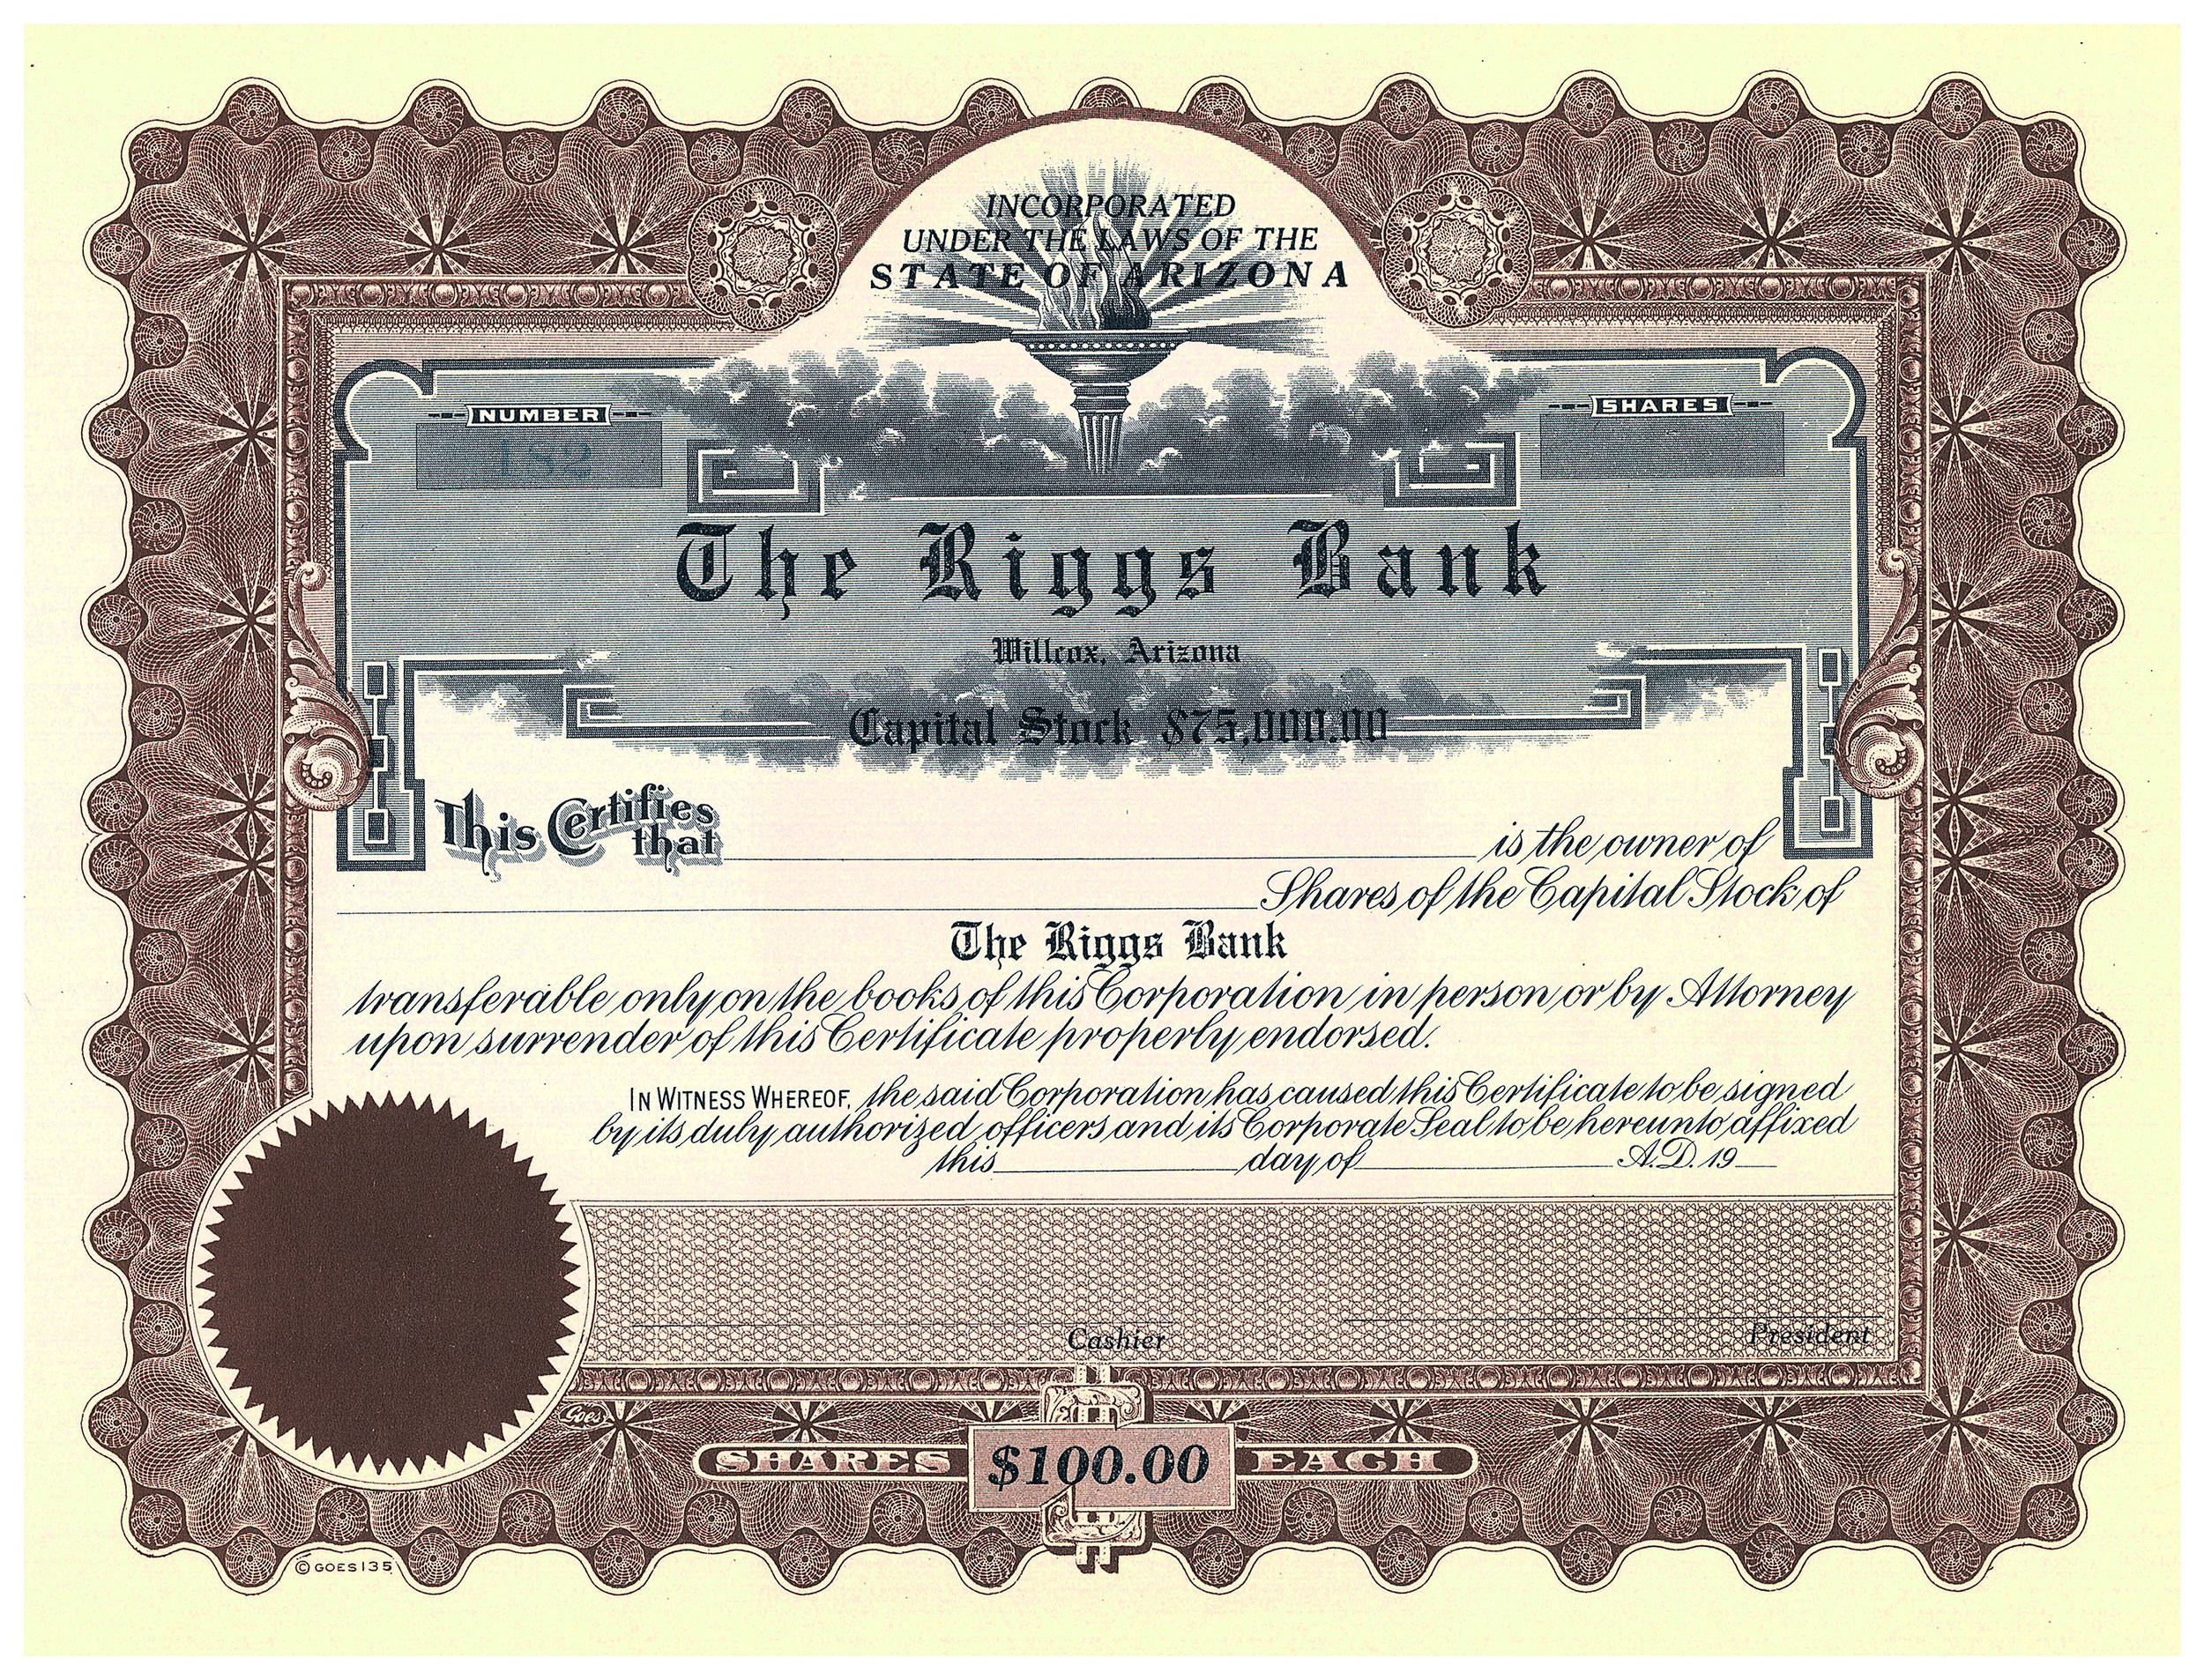 RIGGS BANK STOCK CERTIFICATE NUMBER 182   FRONT